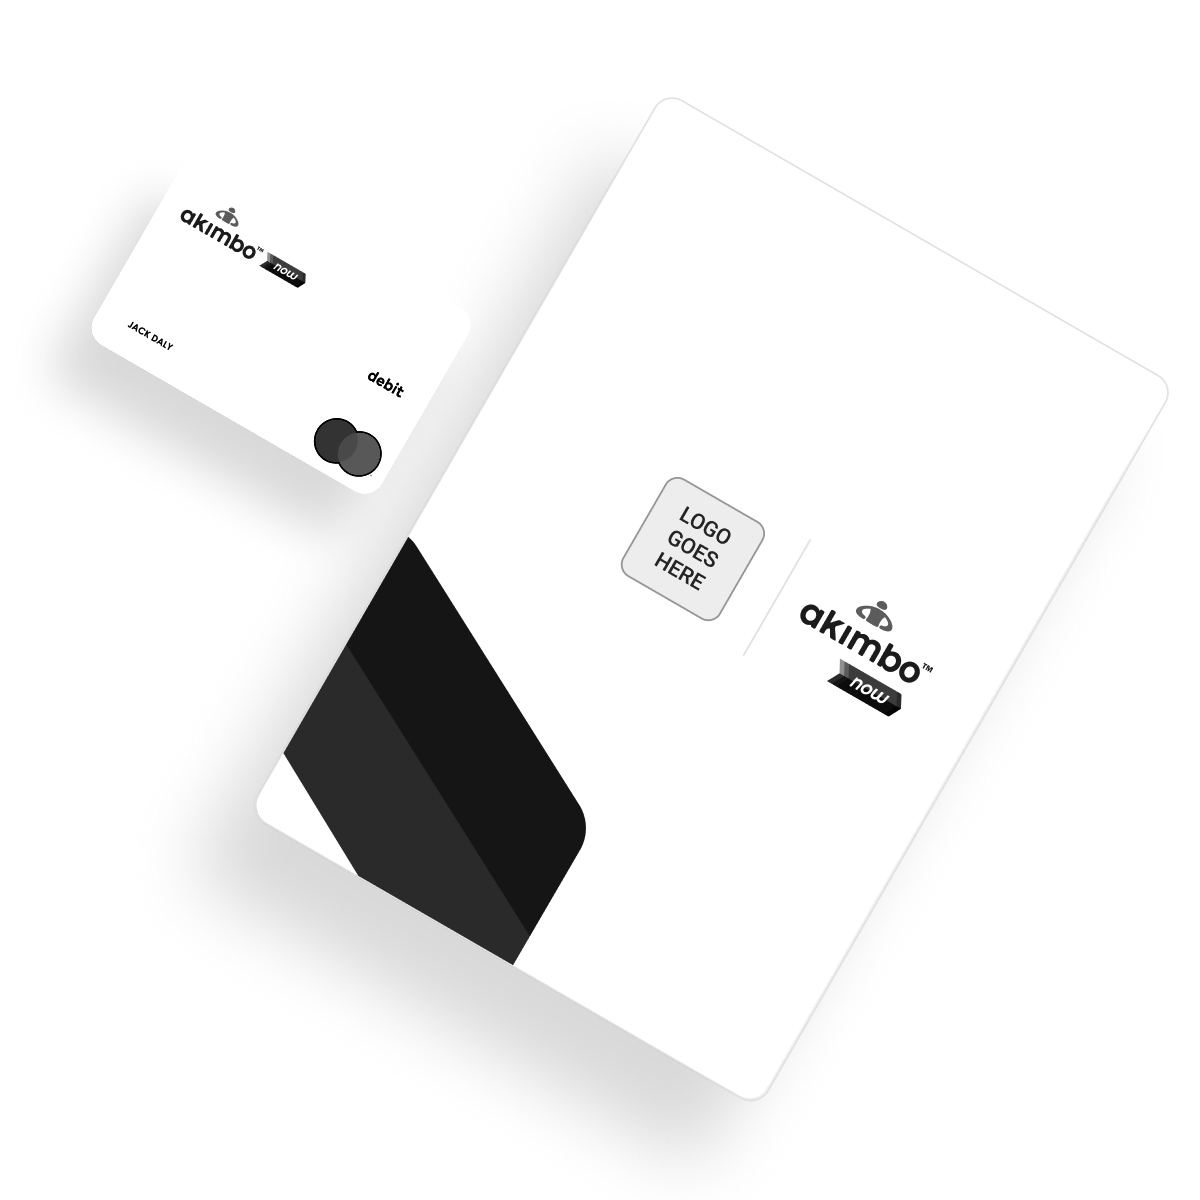 voyagercard2